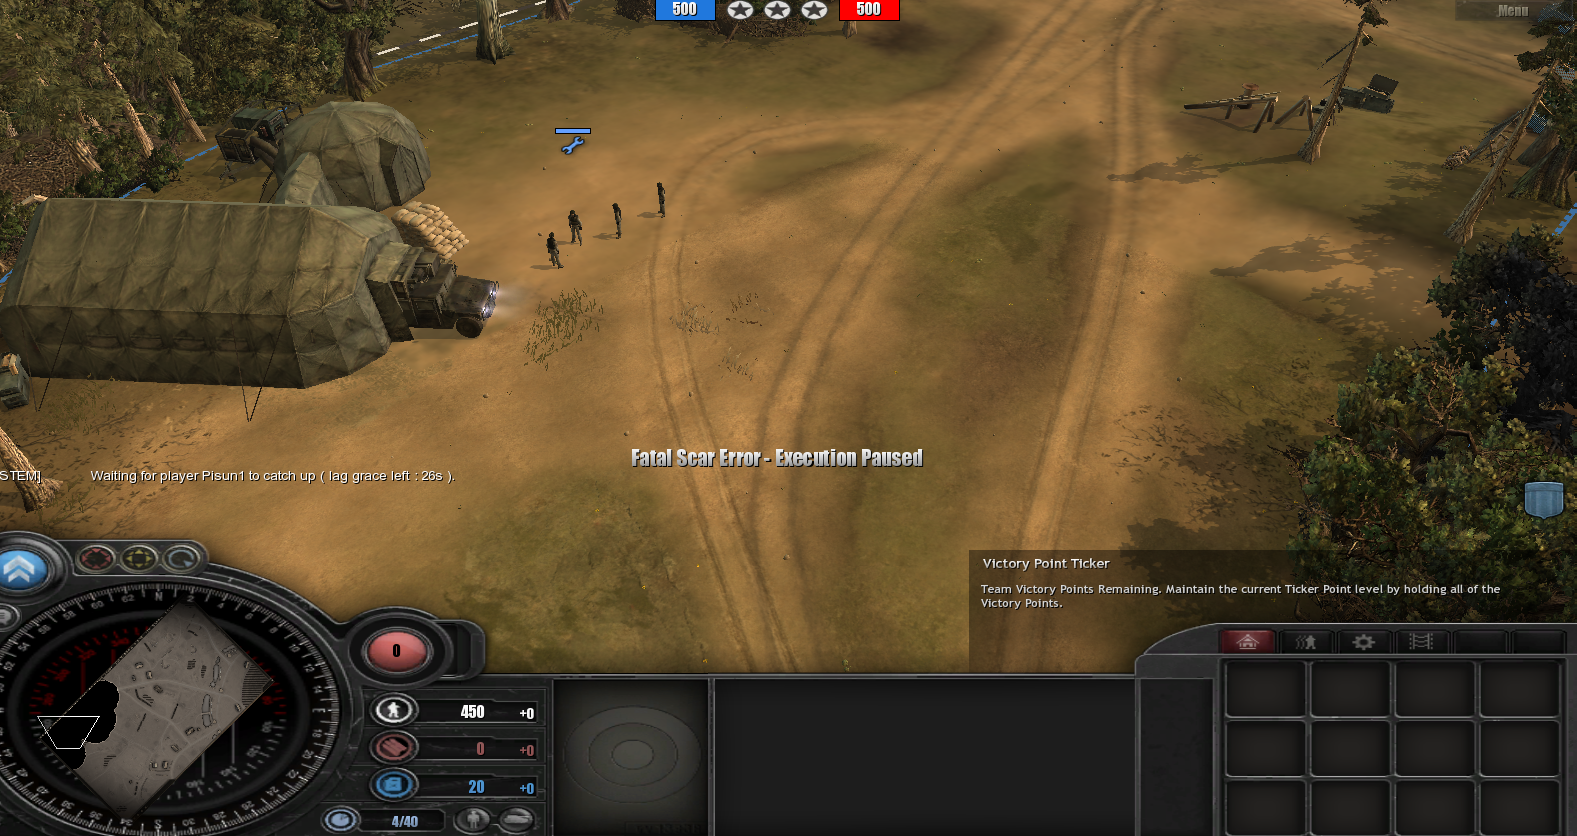 coh custom maps launcher download